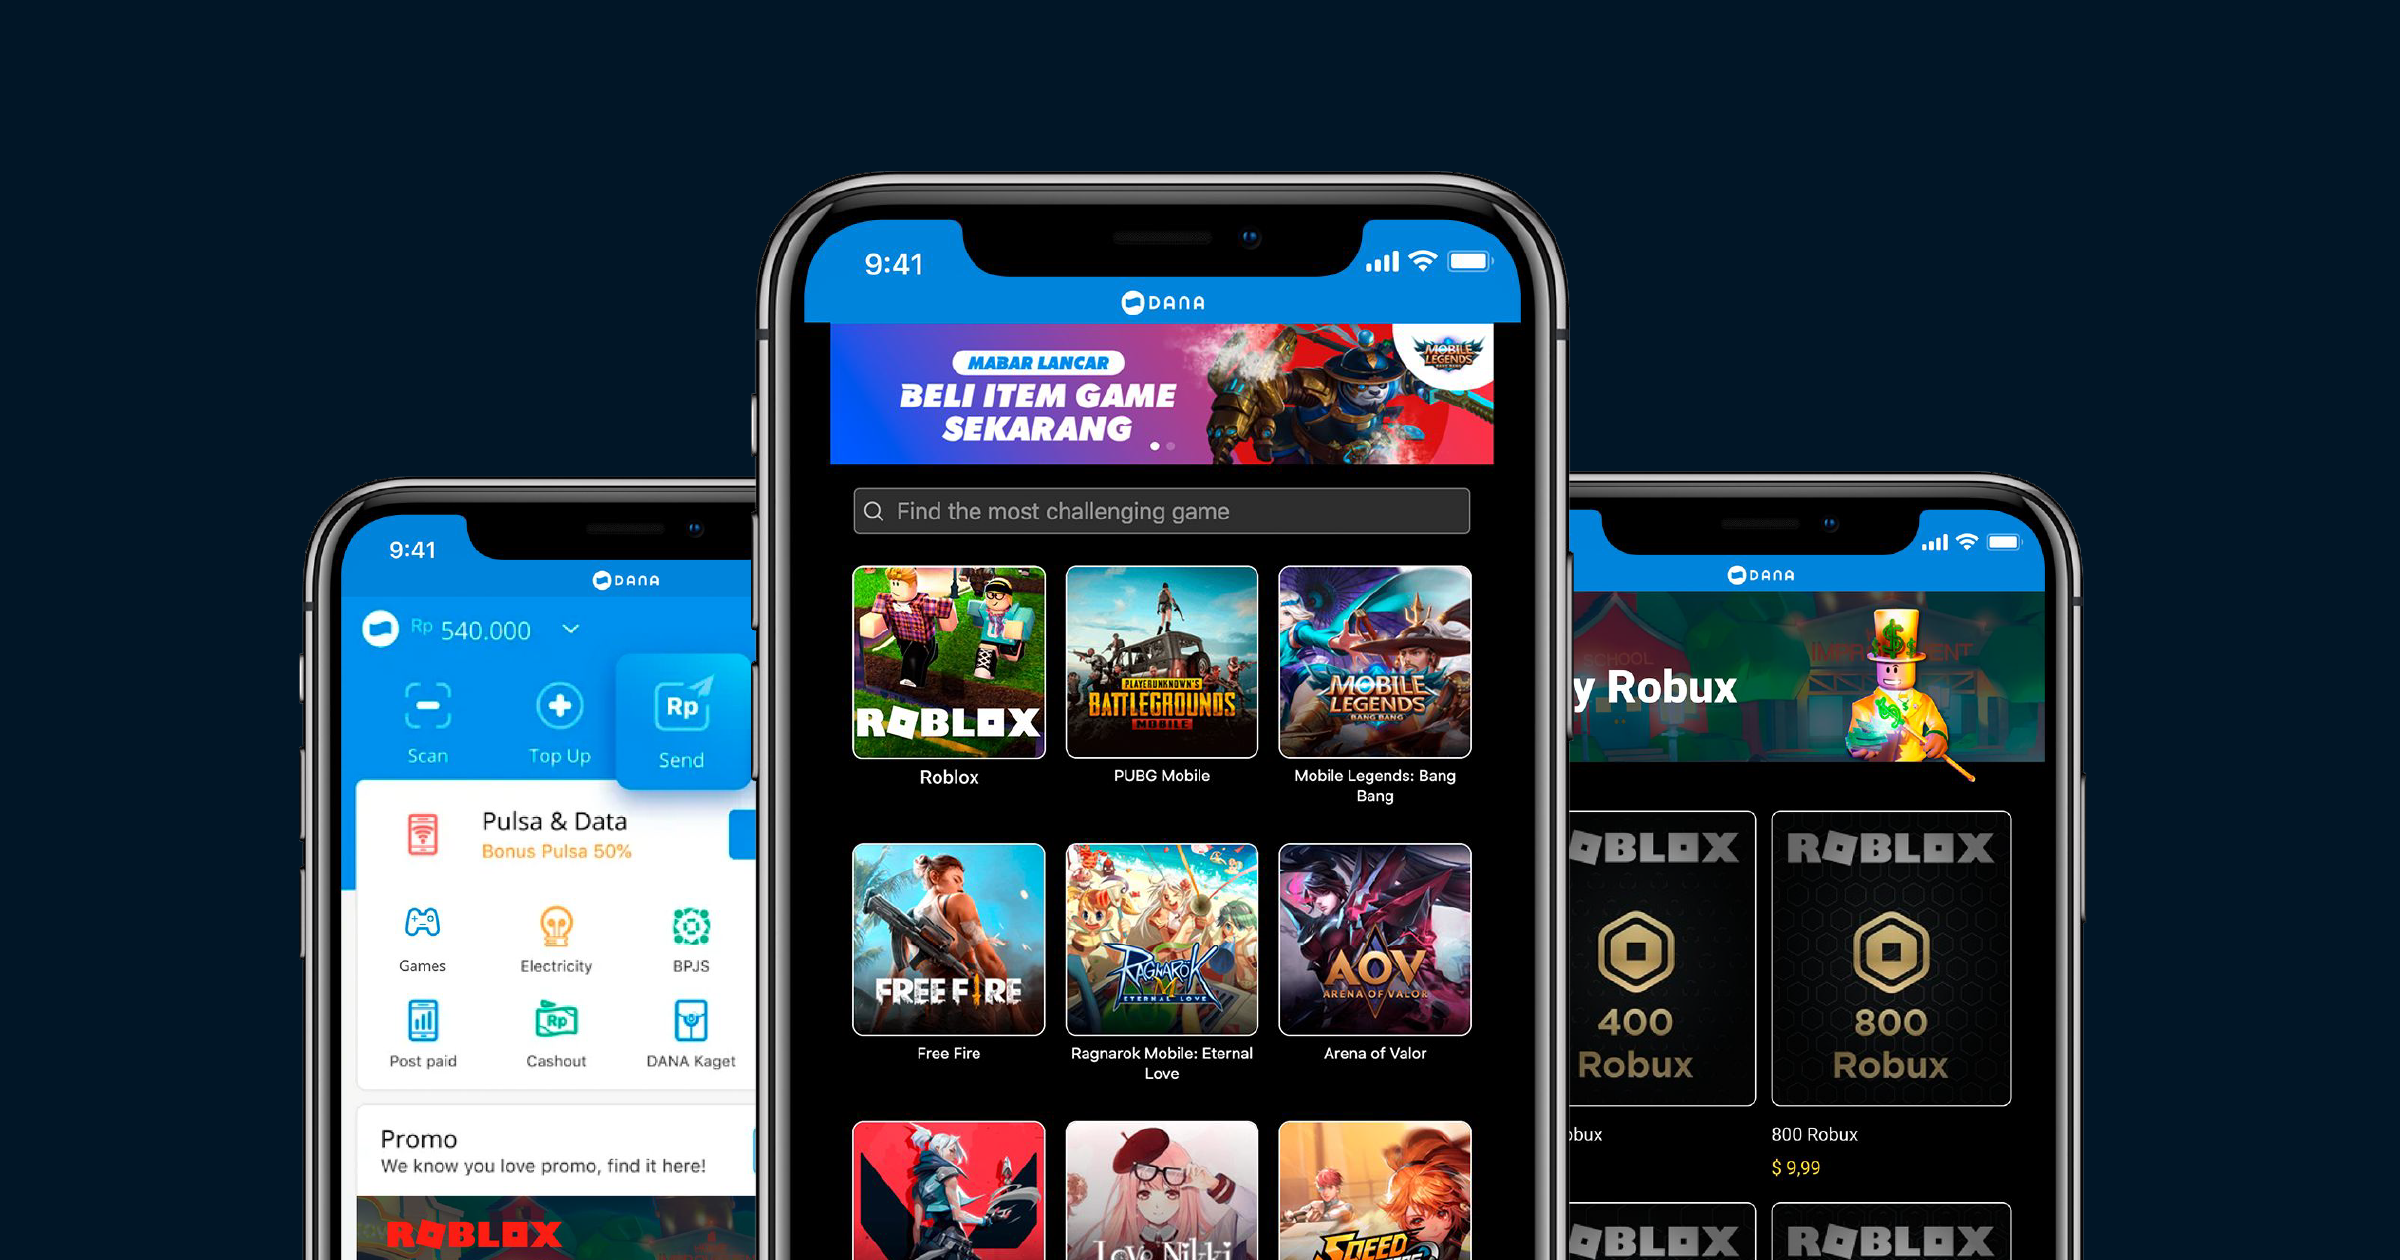 HOW TO ENHANCE YOUR MOBILE GAME WITH DIGITAL DISTRIBUTION